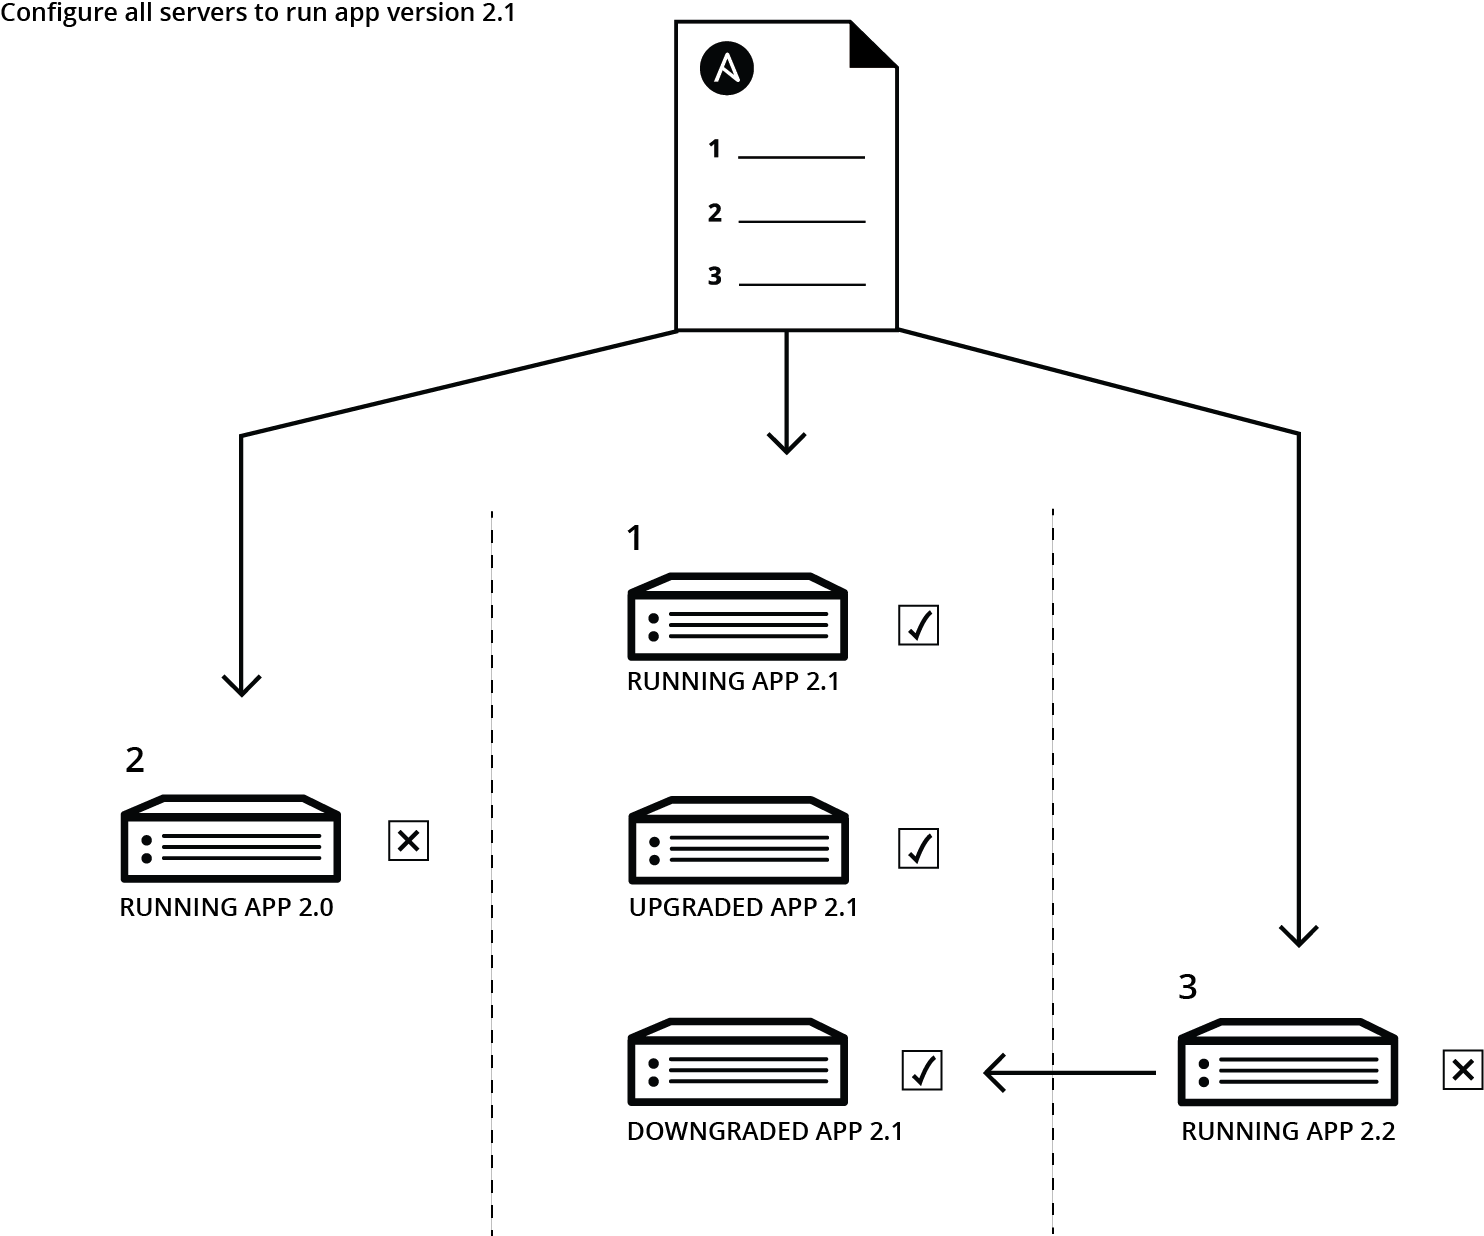 configuration_management_diagram